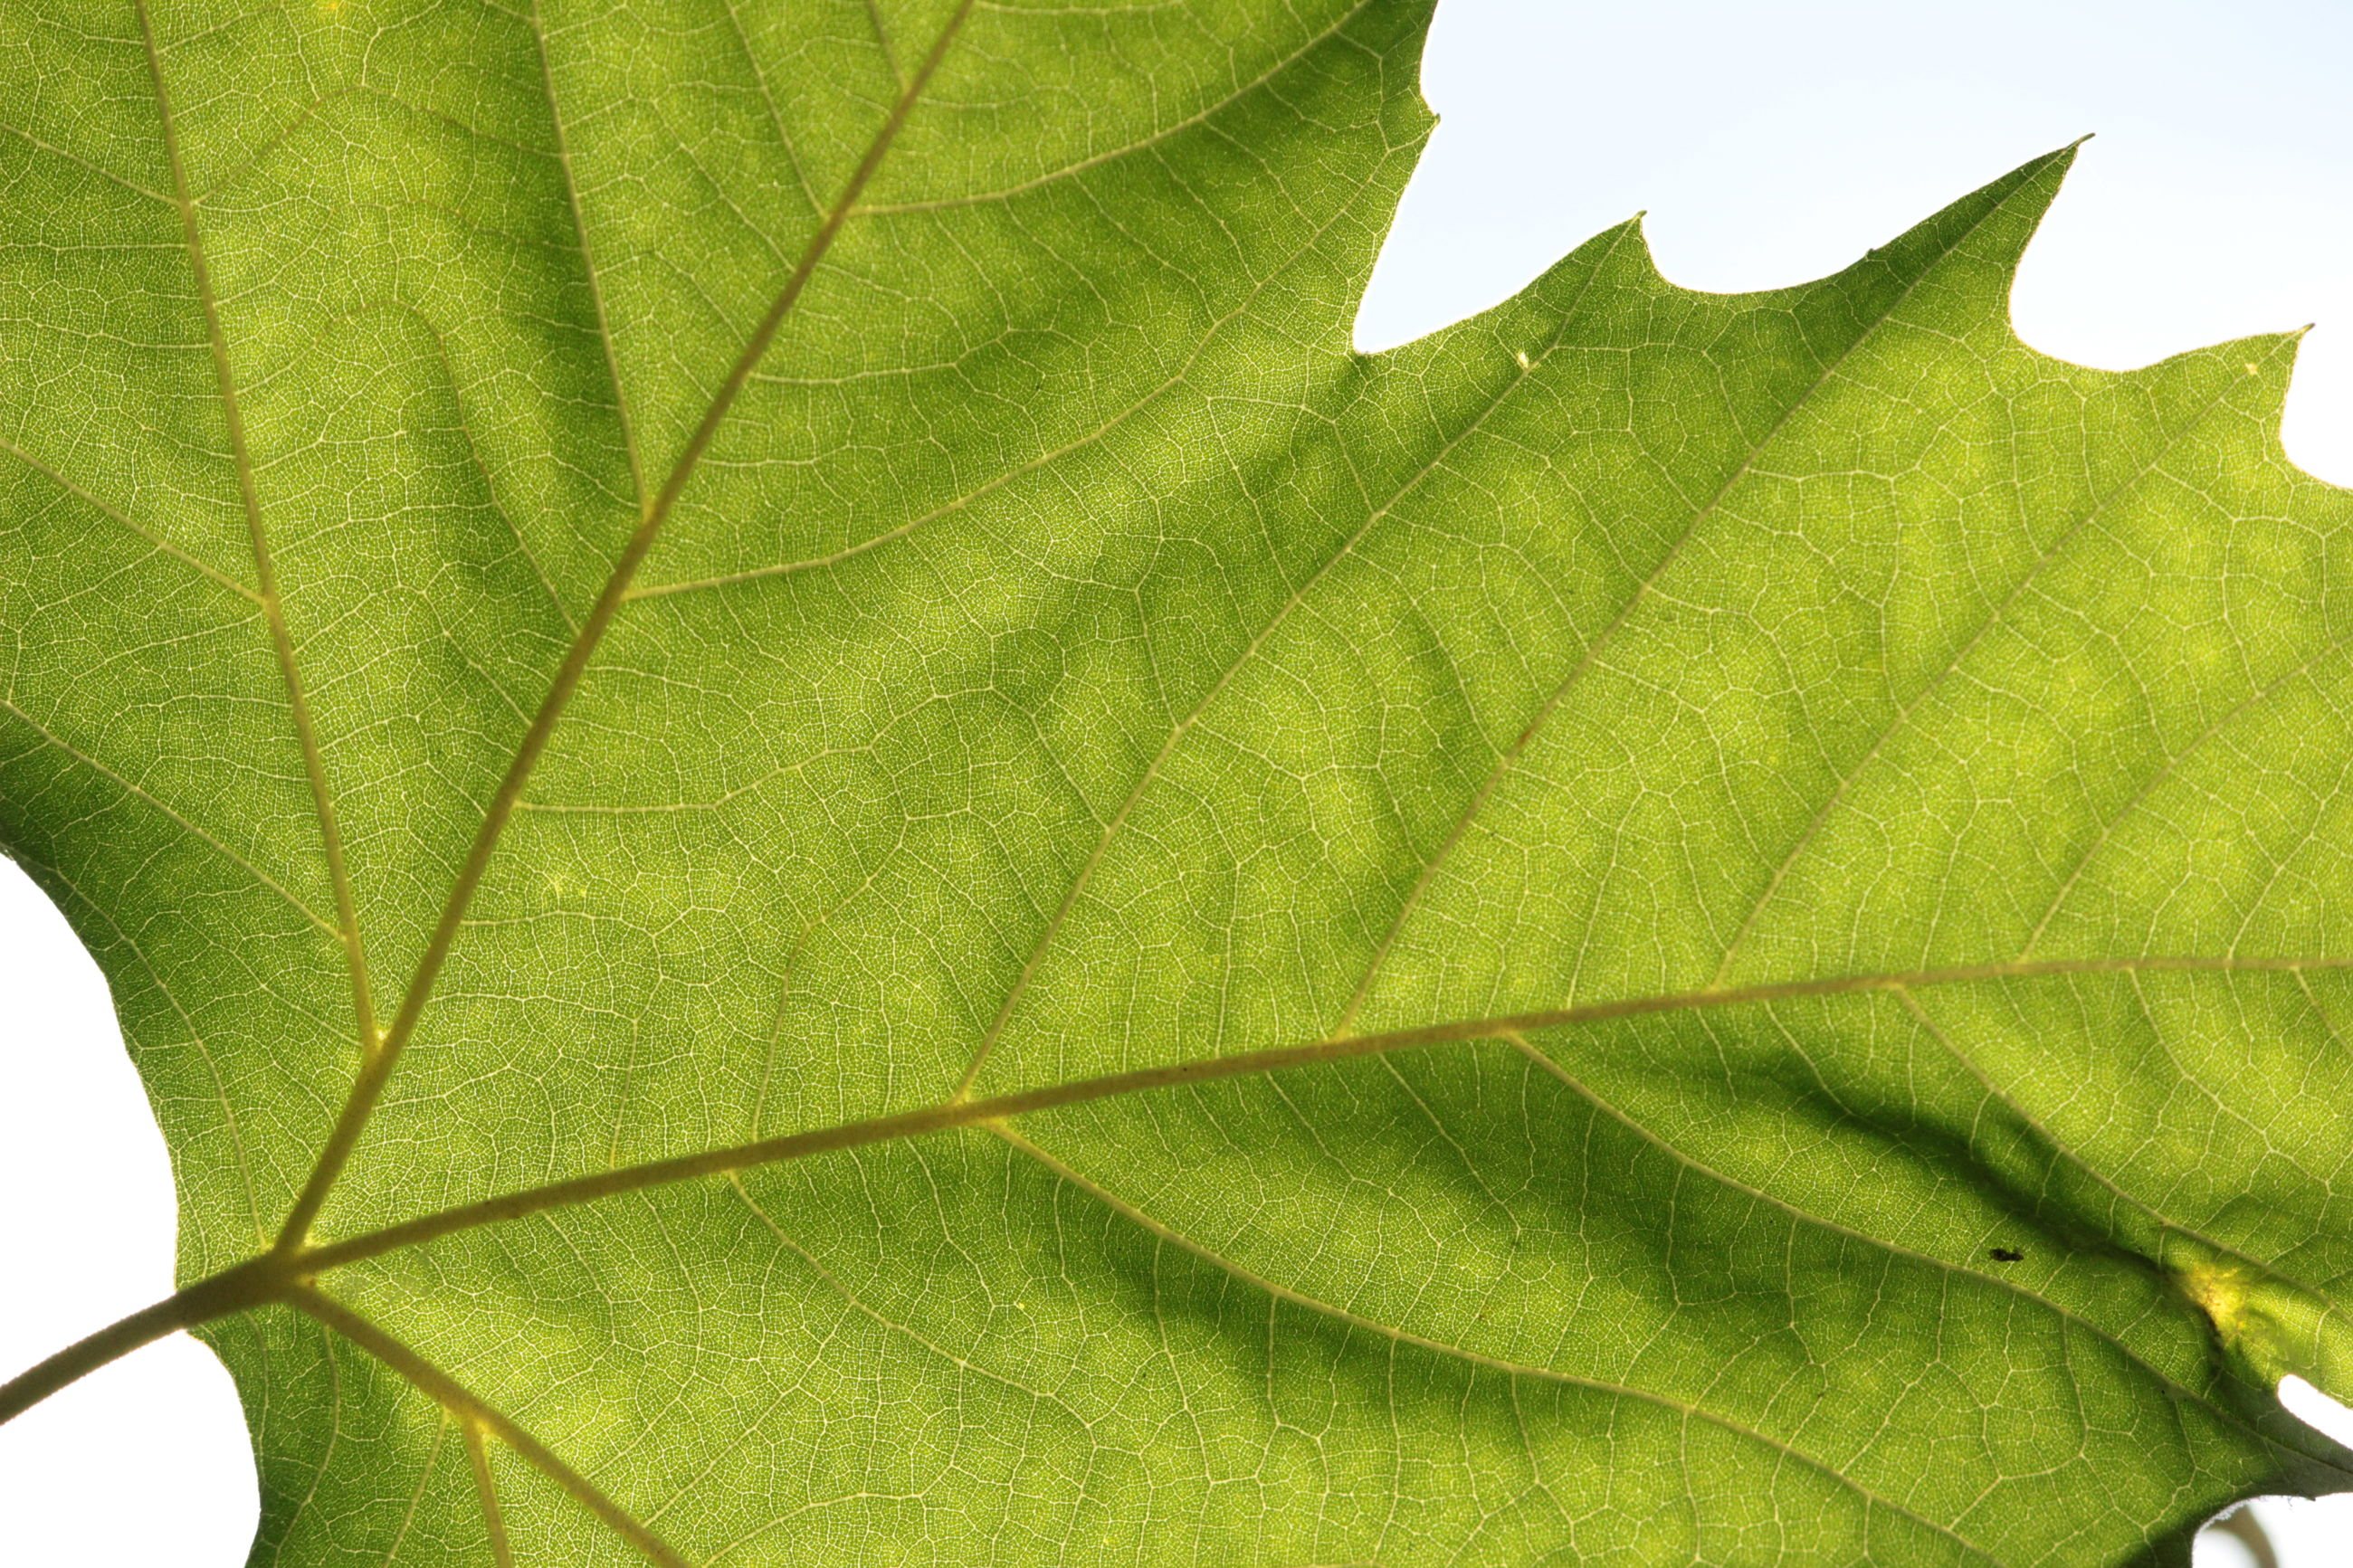 leaf, plant part, green color, close-up, leaf vein, plant, growth, no people, nature, day, beauty in nature, natural pattern, outdoors, pattern, leaves, fragility, tree, botany, backgrounds, low angle view, maple leaf